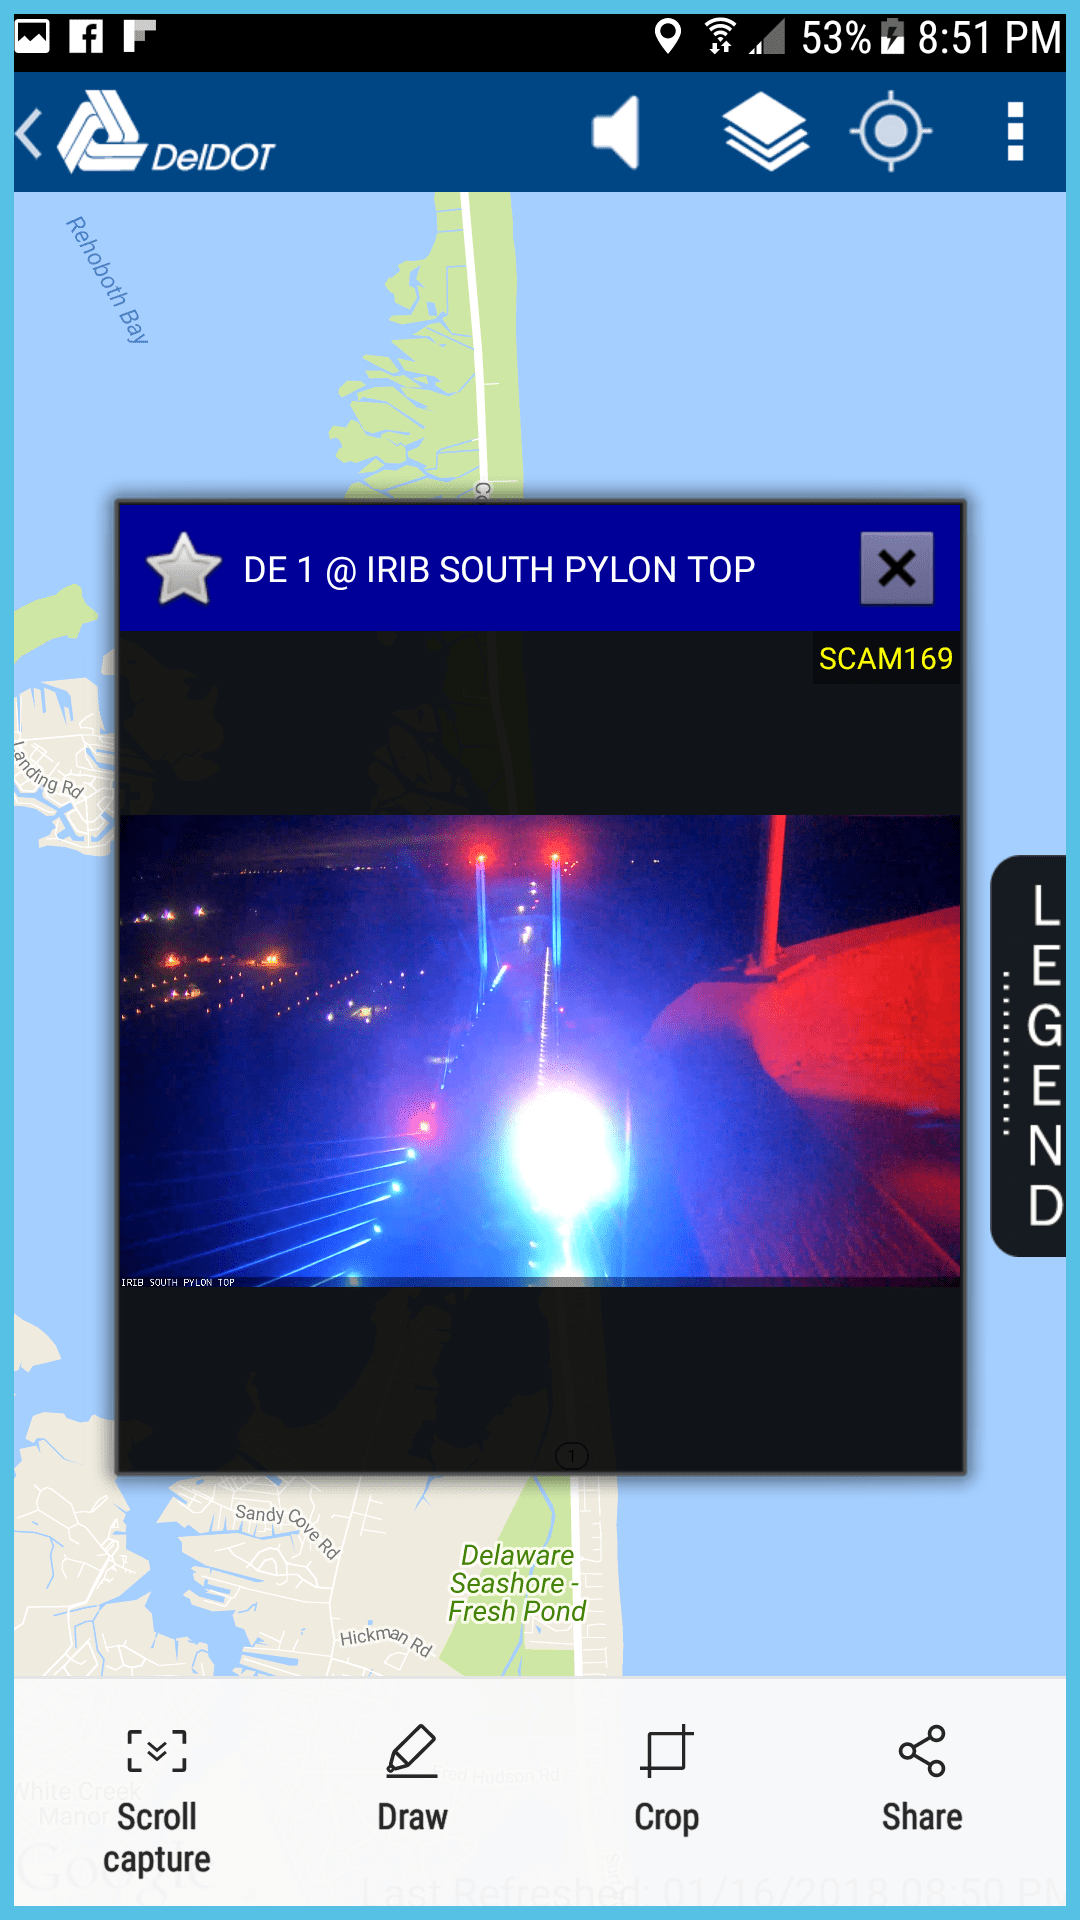 deldot app,traffic camera, web cam, delaware, sussex coutny, indian river inlet bridge, south tower, charles w cullen bridge, north beach, southside, big chill beach club, route 1, coastal highway, indian river inlet bridge at night,